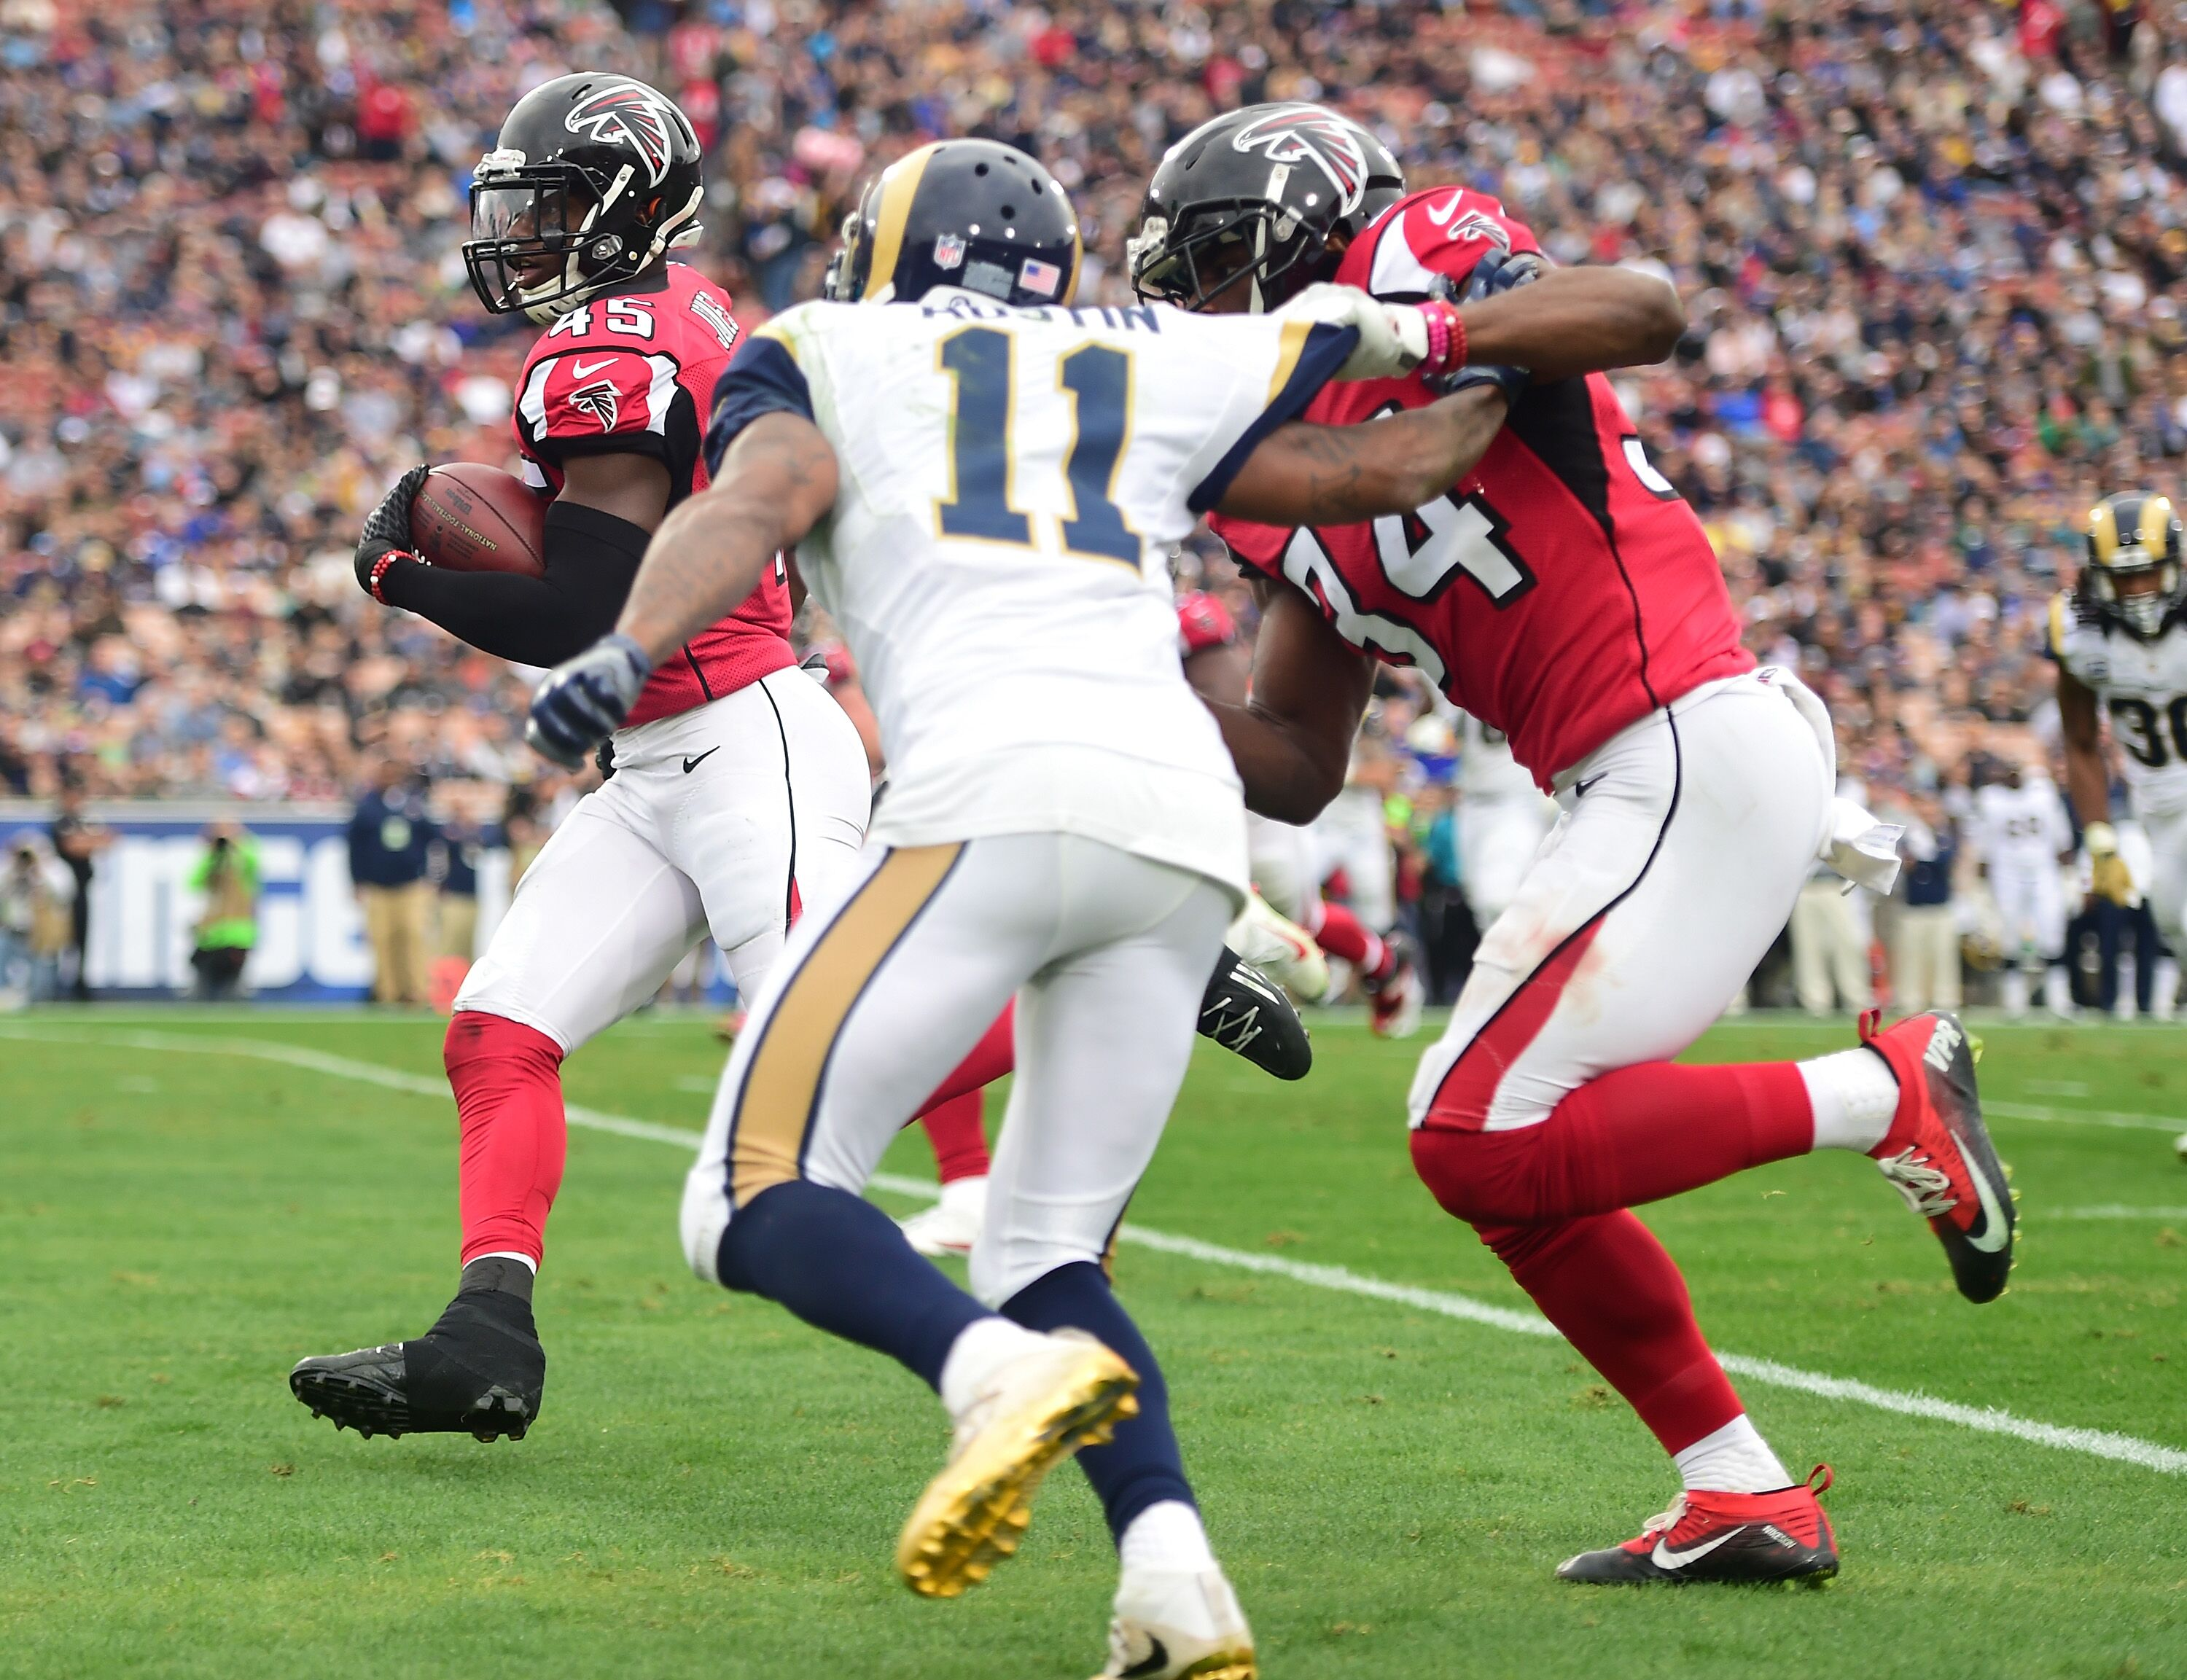 629175572-atlanta-falcons-v-los-angeles-rams.jpg